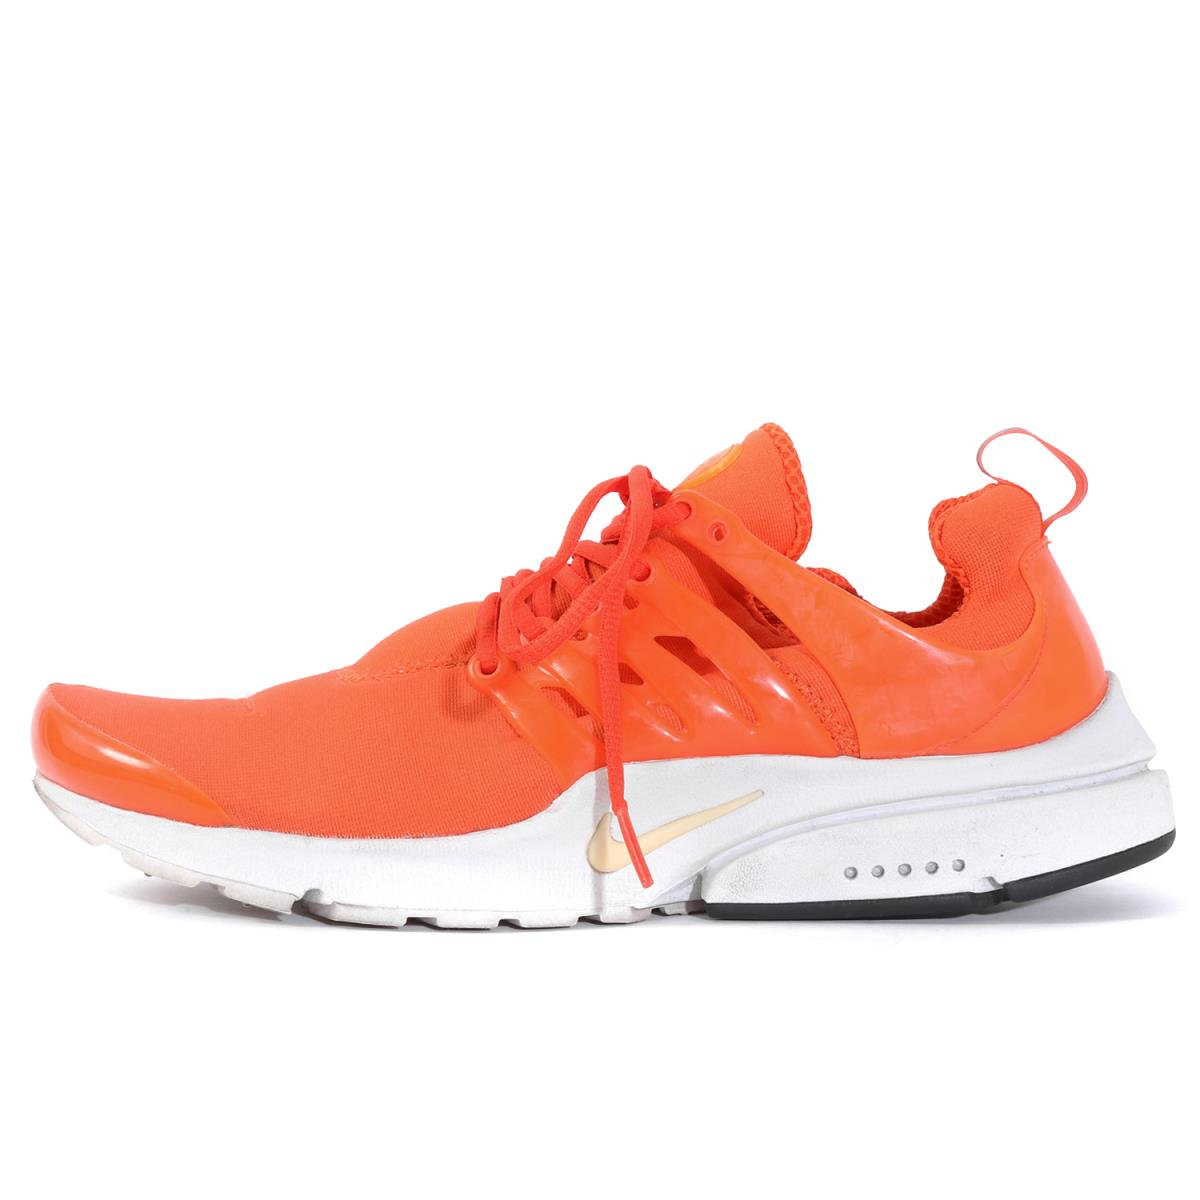 pas cher pour réduction f3630 a50fe NIKE (Nike) AIR PRESTO (347,635-881) orange M (28-29cm)